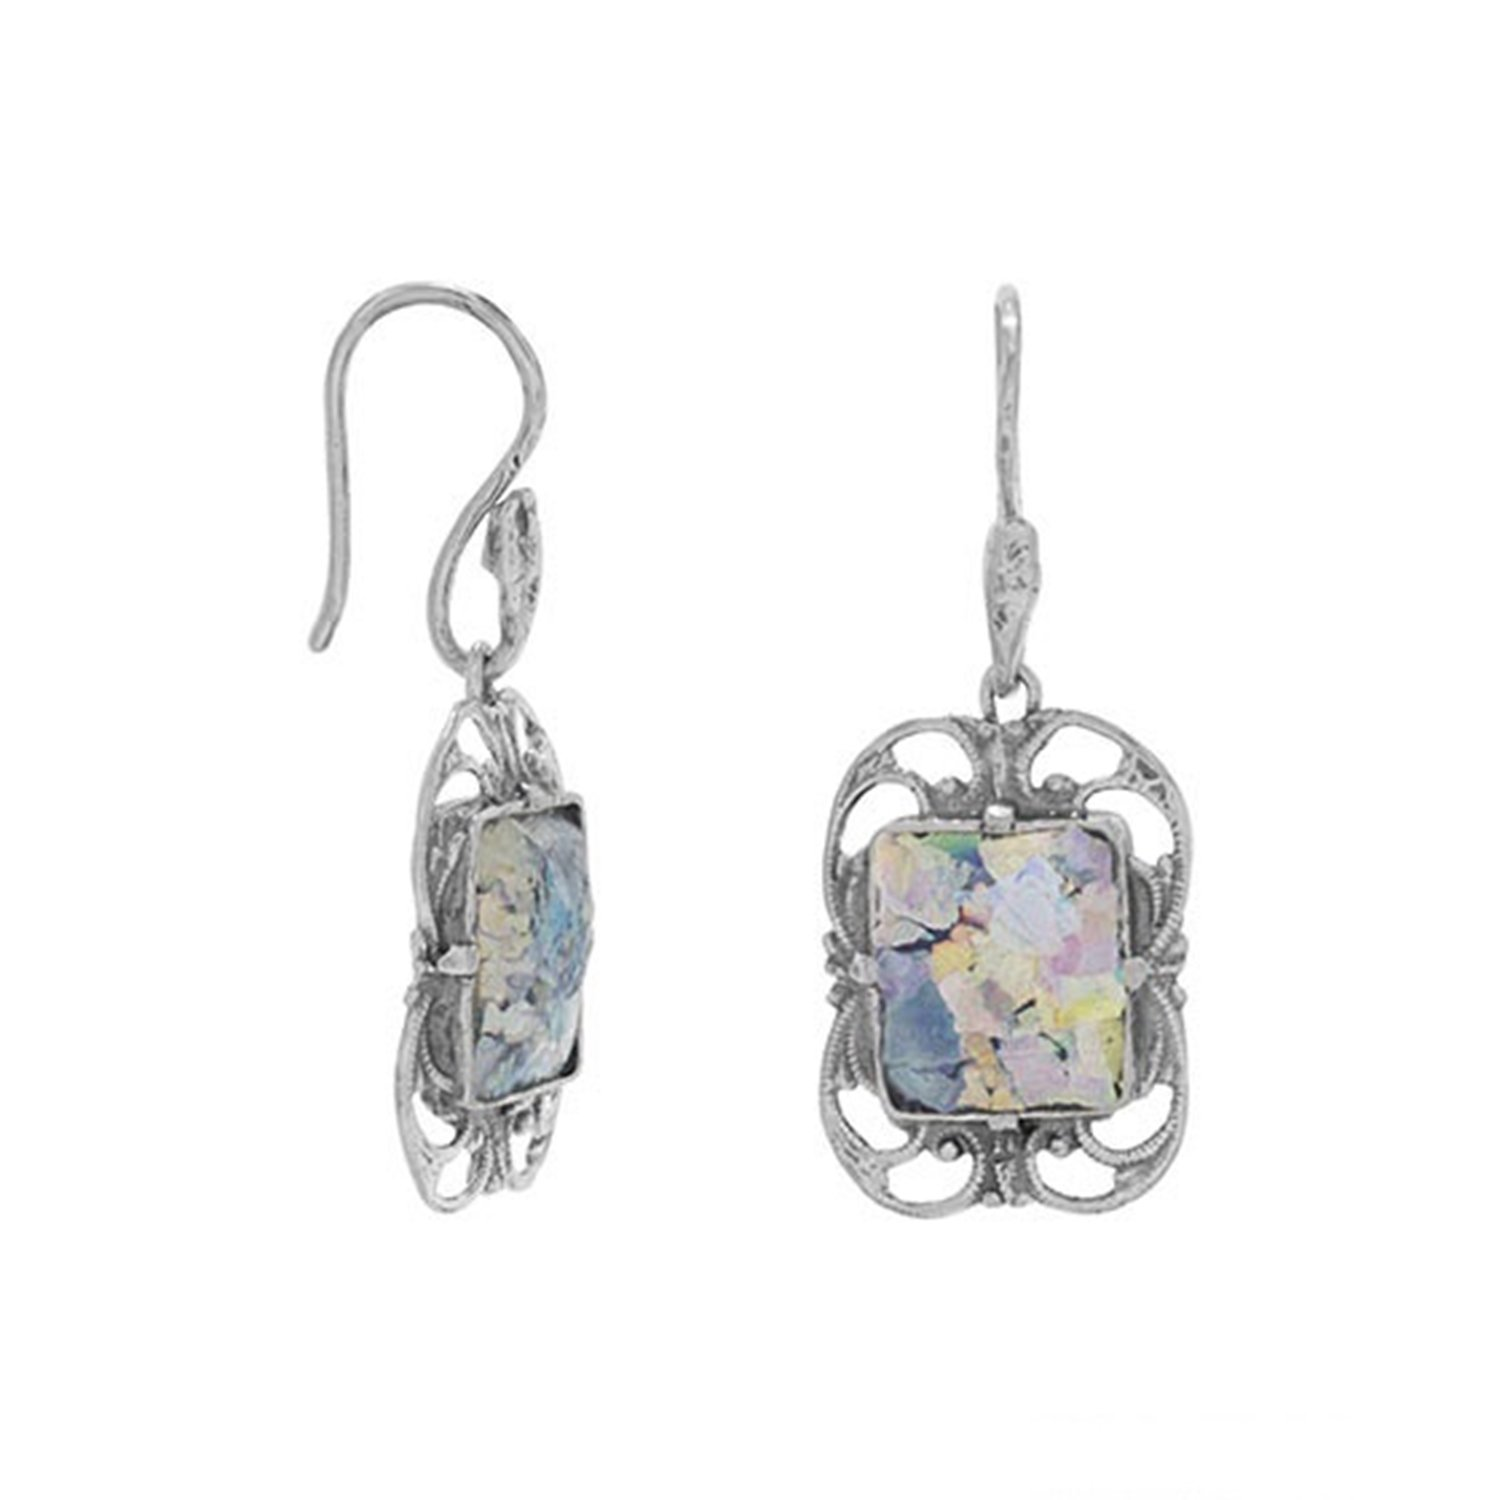 Ancient Roman Glass Earrings with Scroll Design Border